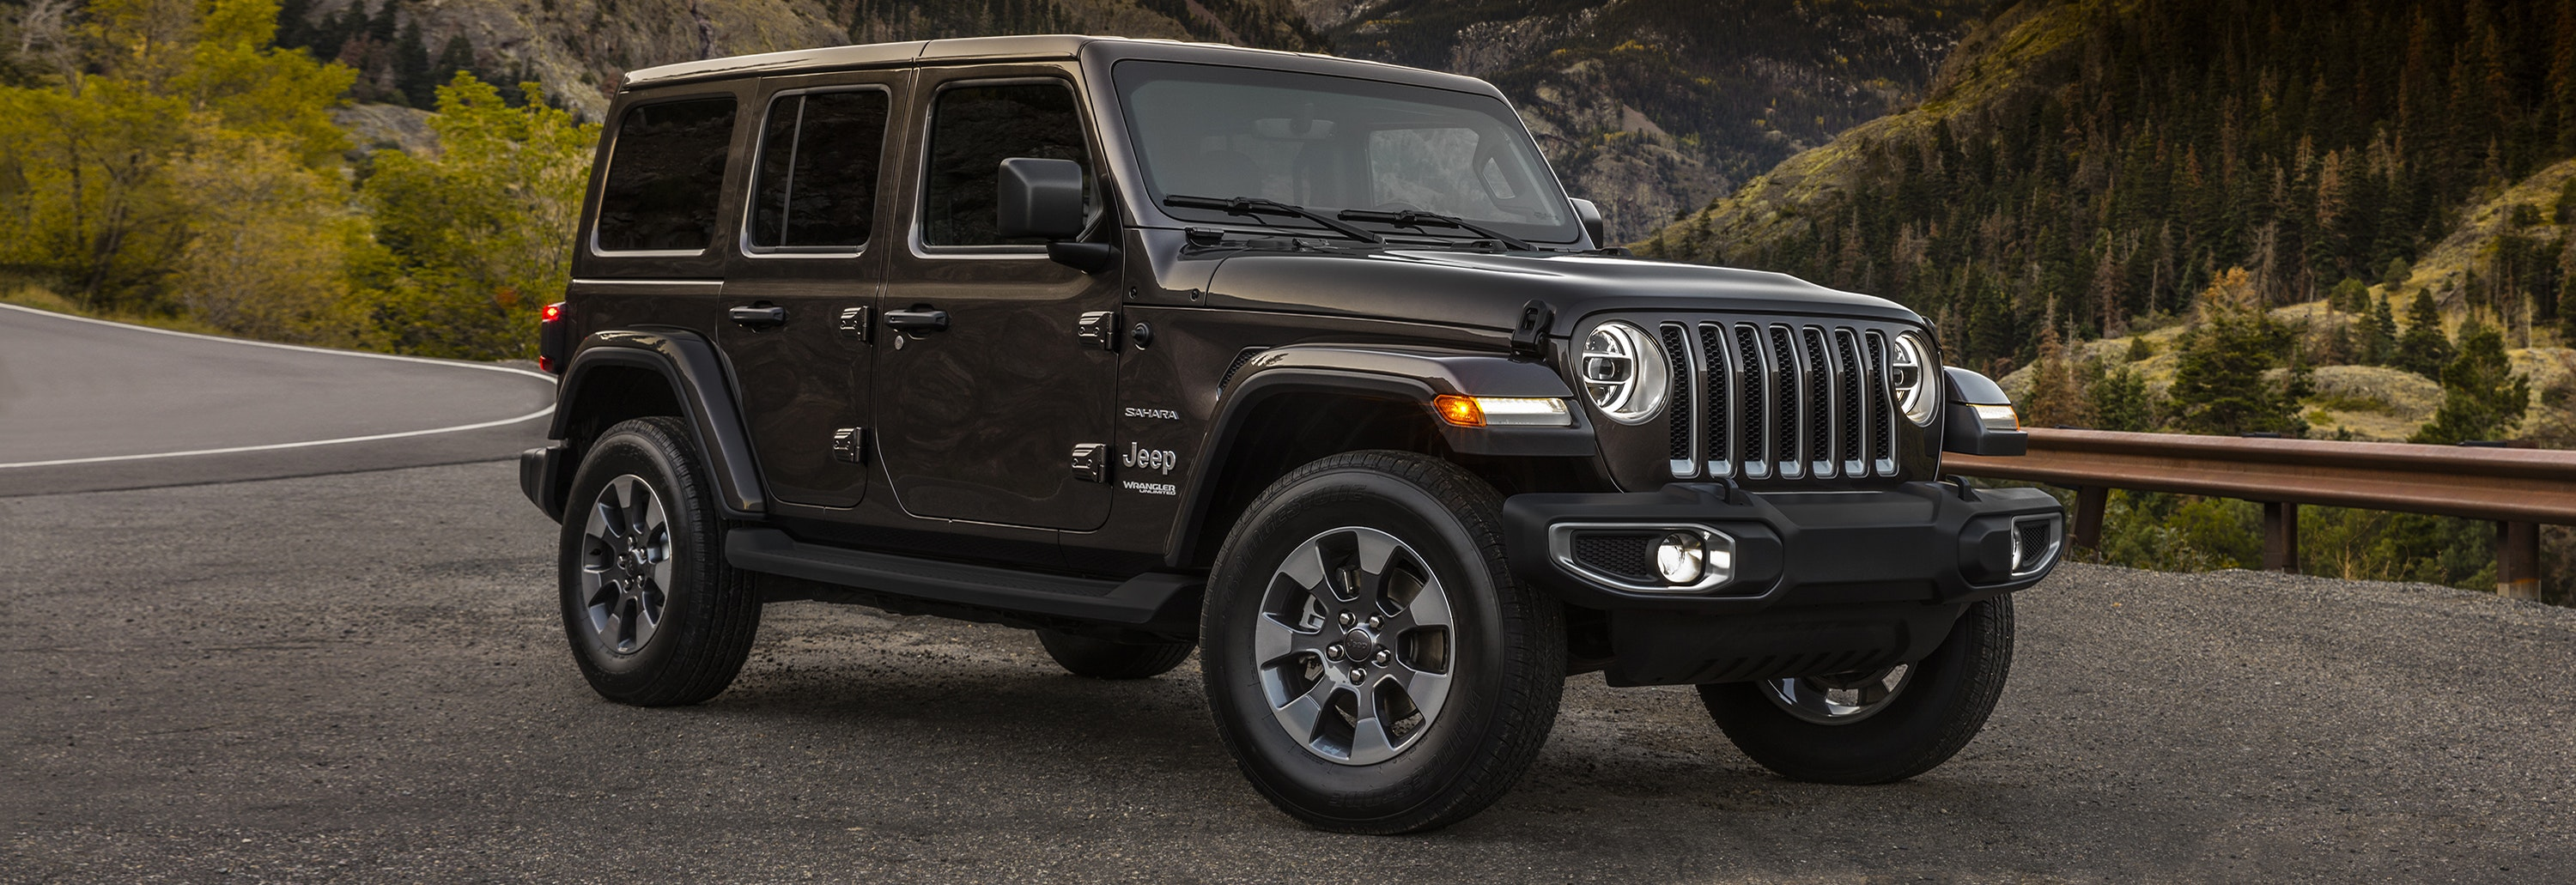 2018 jeep wrangler brown parked front